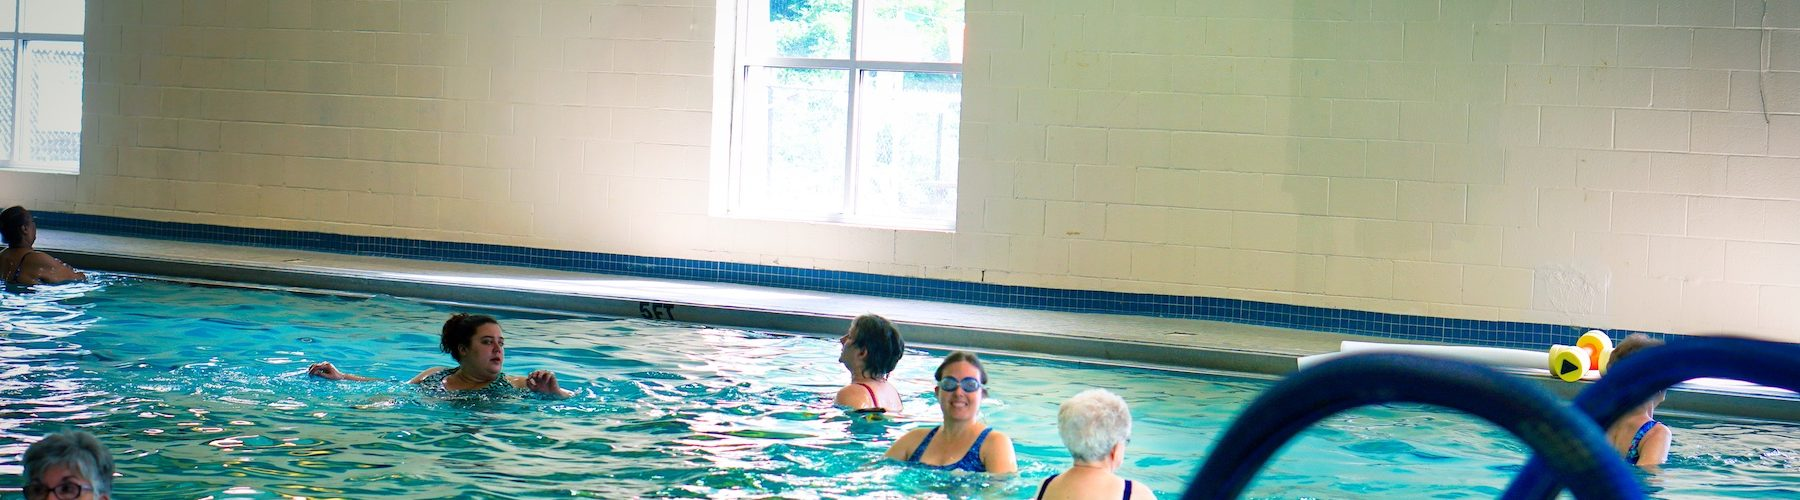 Veronica in the middle of the pool wearing a blue swimsuit and blue goggles with her hair in a bun. There are several older ladies clustered around working out, too.